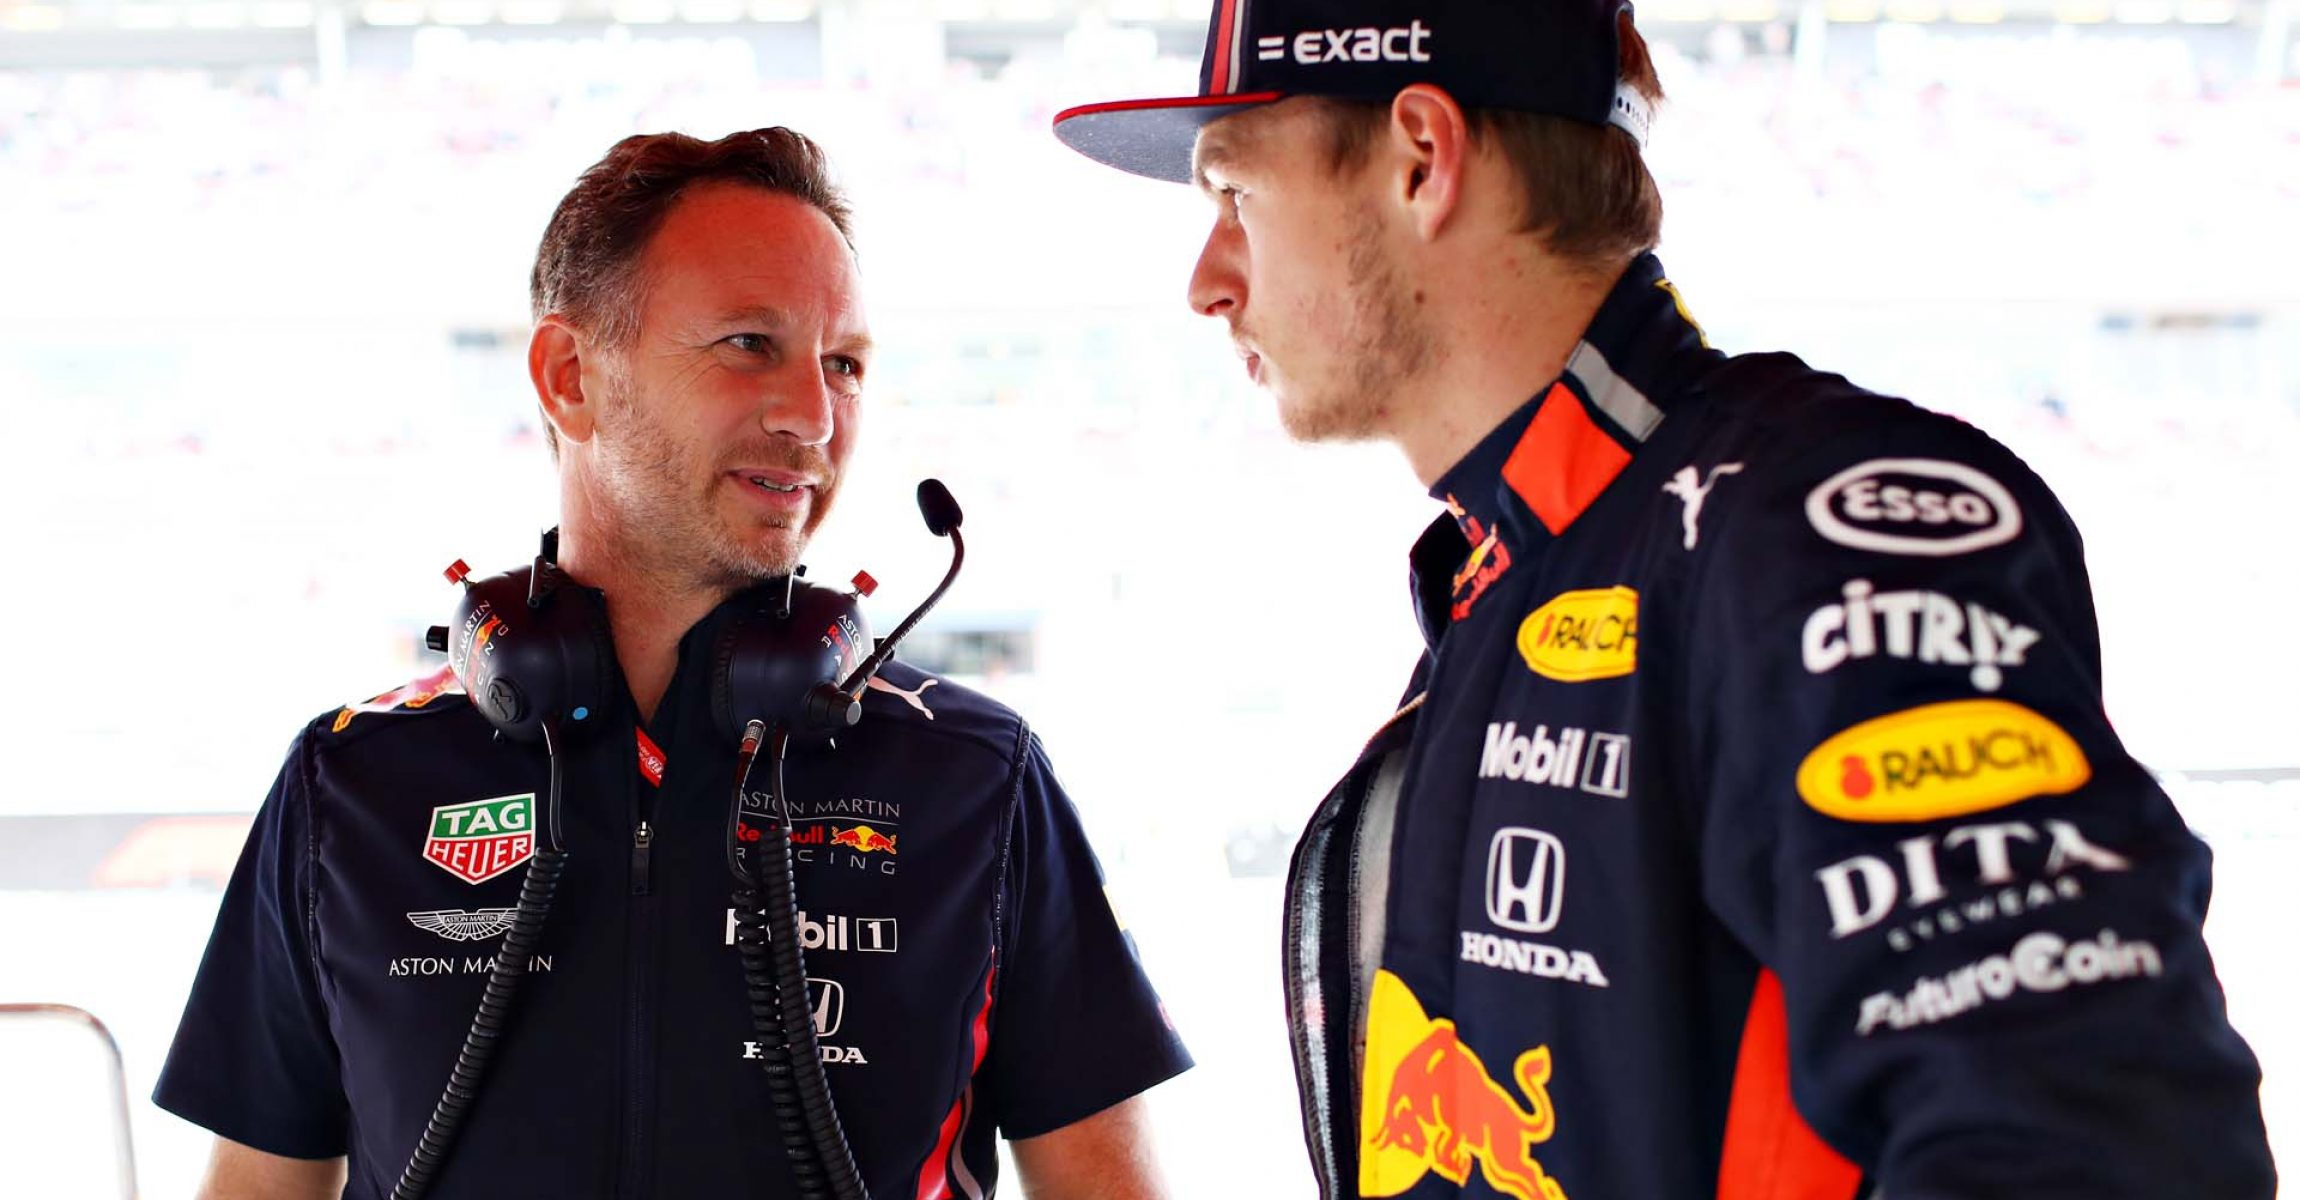 BARCELONA, SPAIN - MAY 11: Red Bull Racing Team Principal Christian Horner talks with Max Verstappen of Netherlands and Red Bull Racing in the garage before qualifying for the F1 Grand Prix of Spain at Circuit de Barcelona-Catalunya on May 11, 2019 in Barcelona, Spain. (Photo by Mark Thompson/Getty Images) // Getty Images / Red Bull Content Pool // AP-1ZA5WB4UD1W11 // Usage for editorial use only // Please go to www.redbullcontentpool.com for further information. //